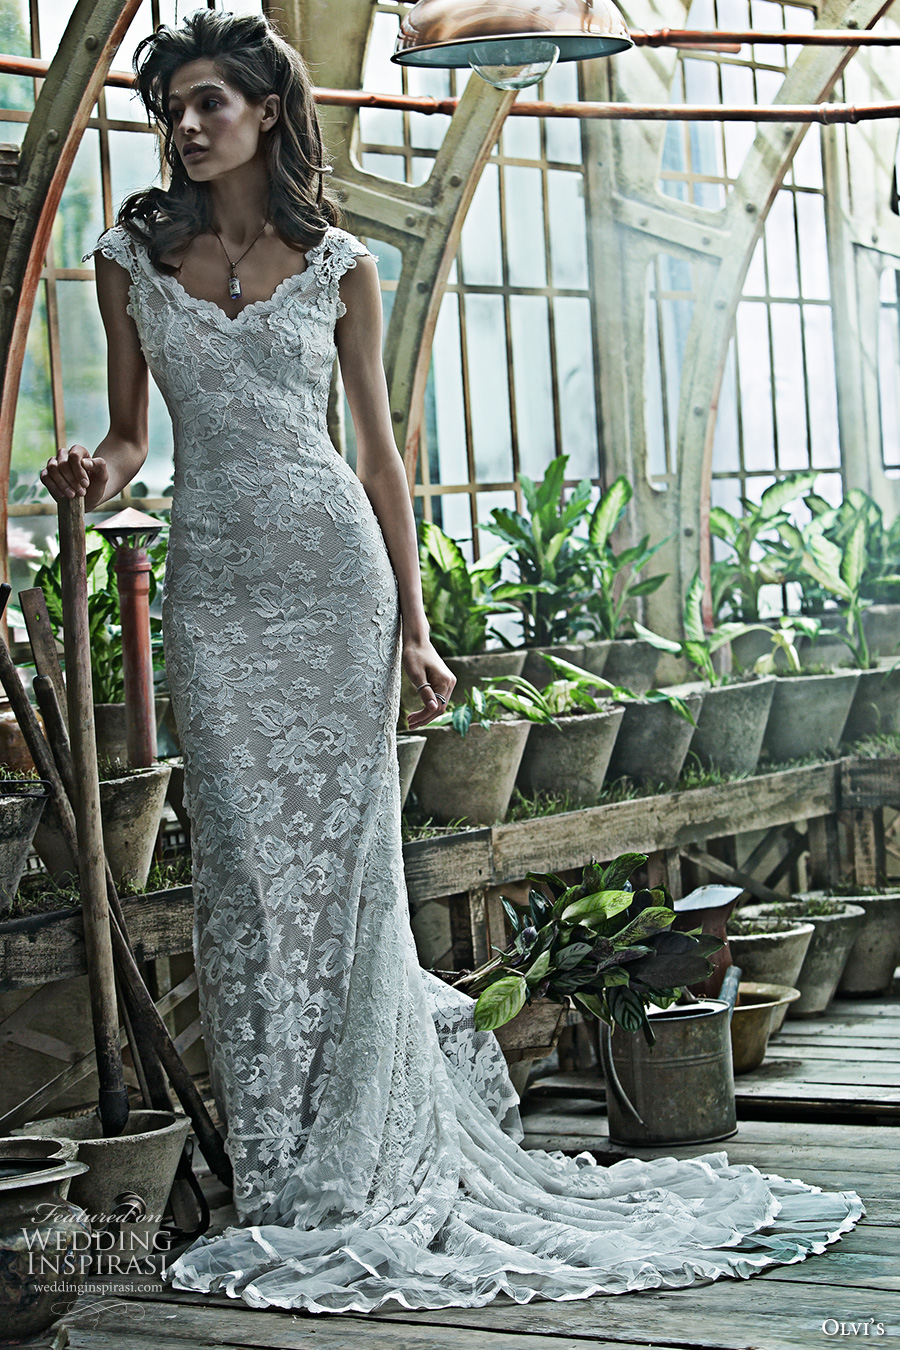 Low Cost Wedding Dresses Nyc : Olga yermoloff couture wedding dresses